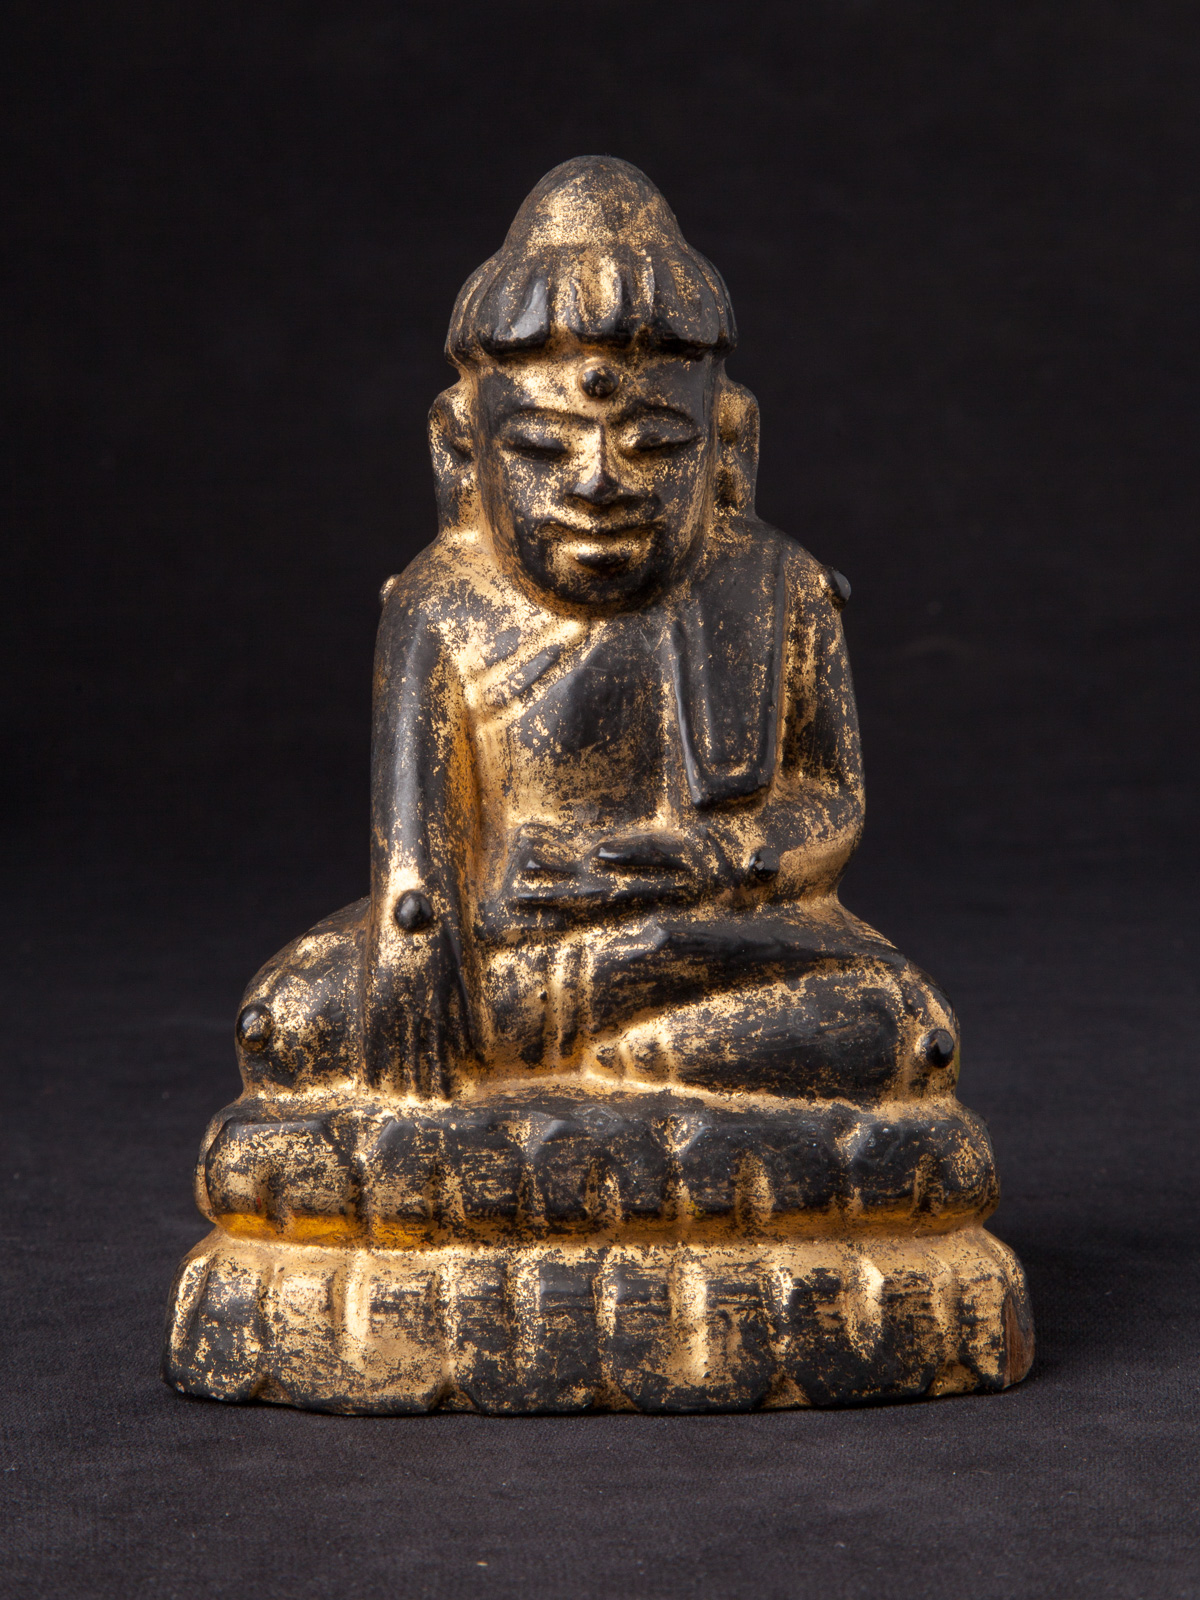 Antique wooden Lotus Buddha statue from Burma